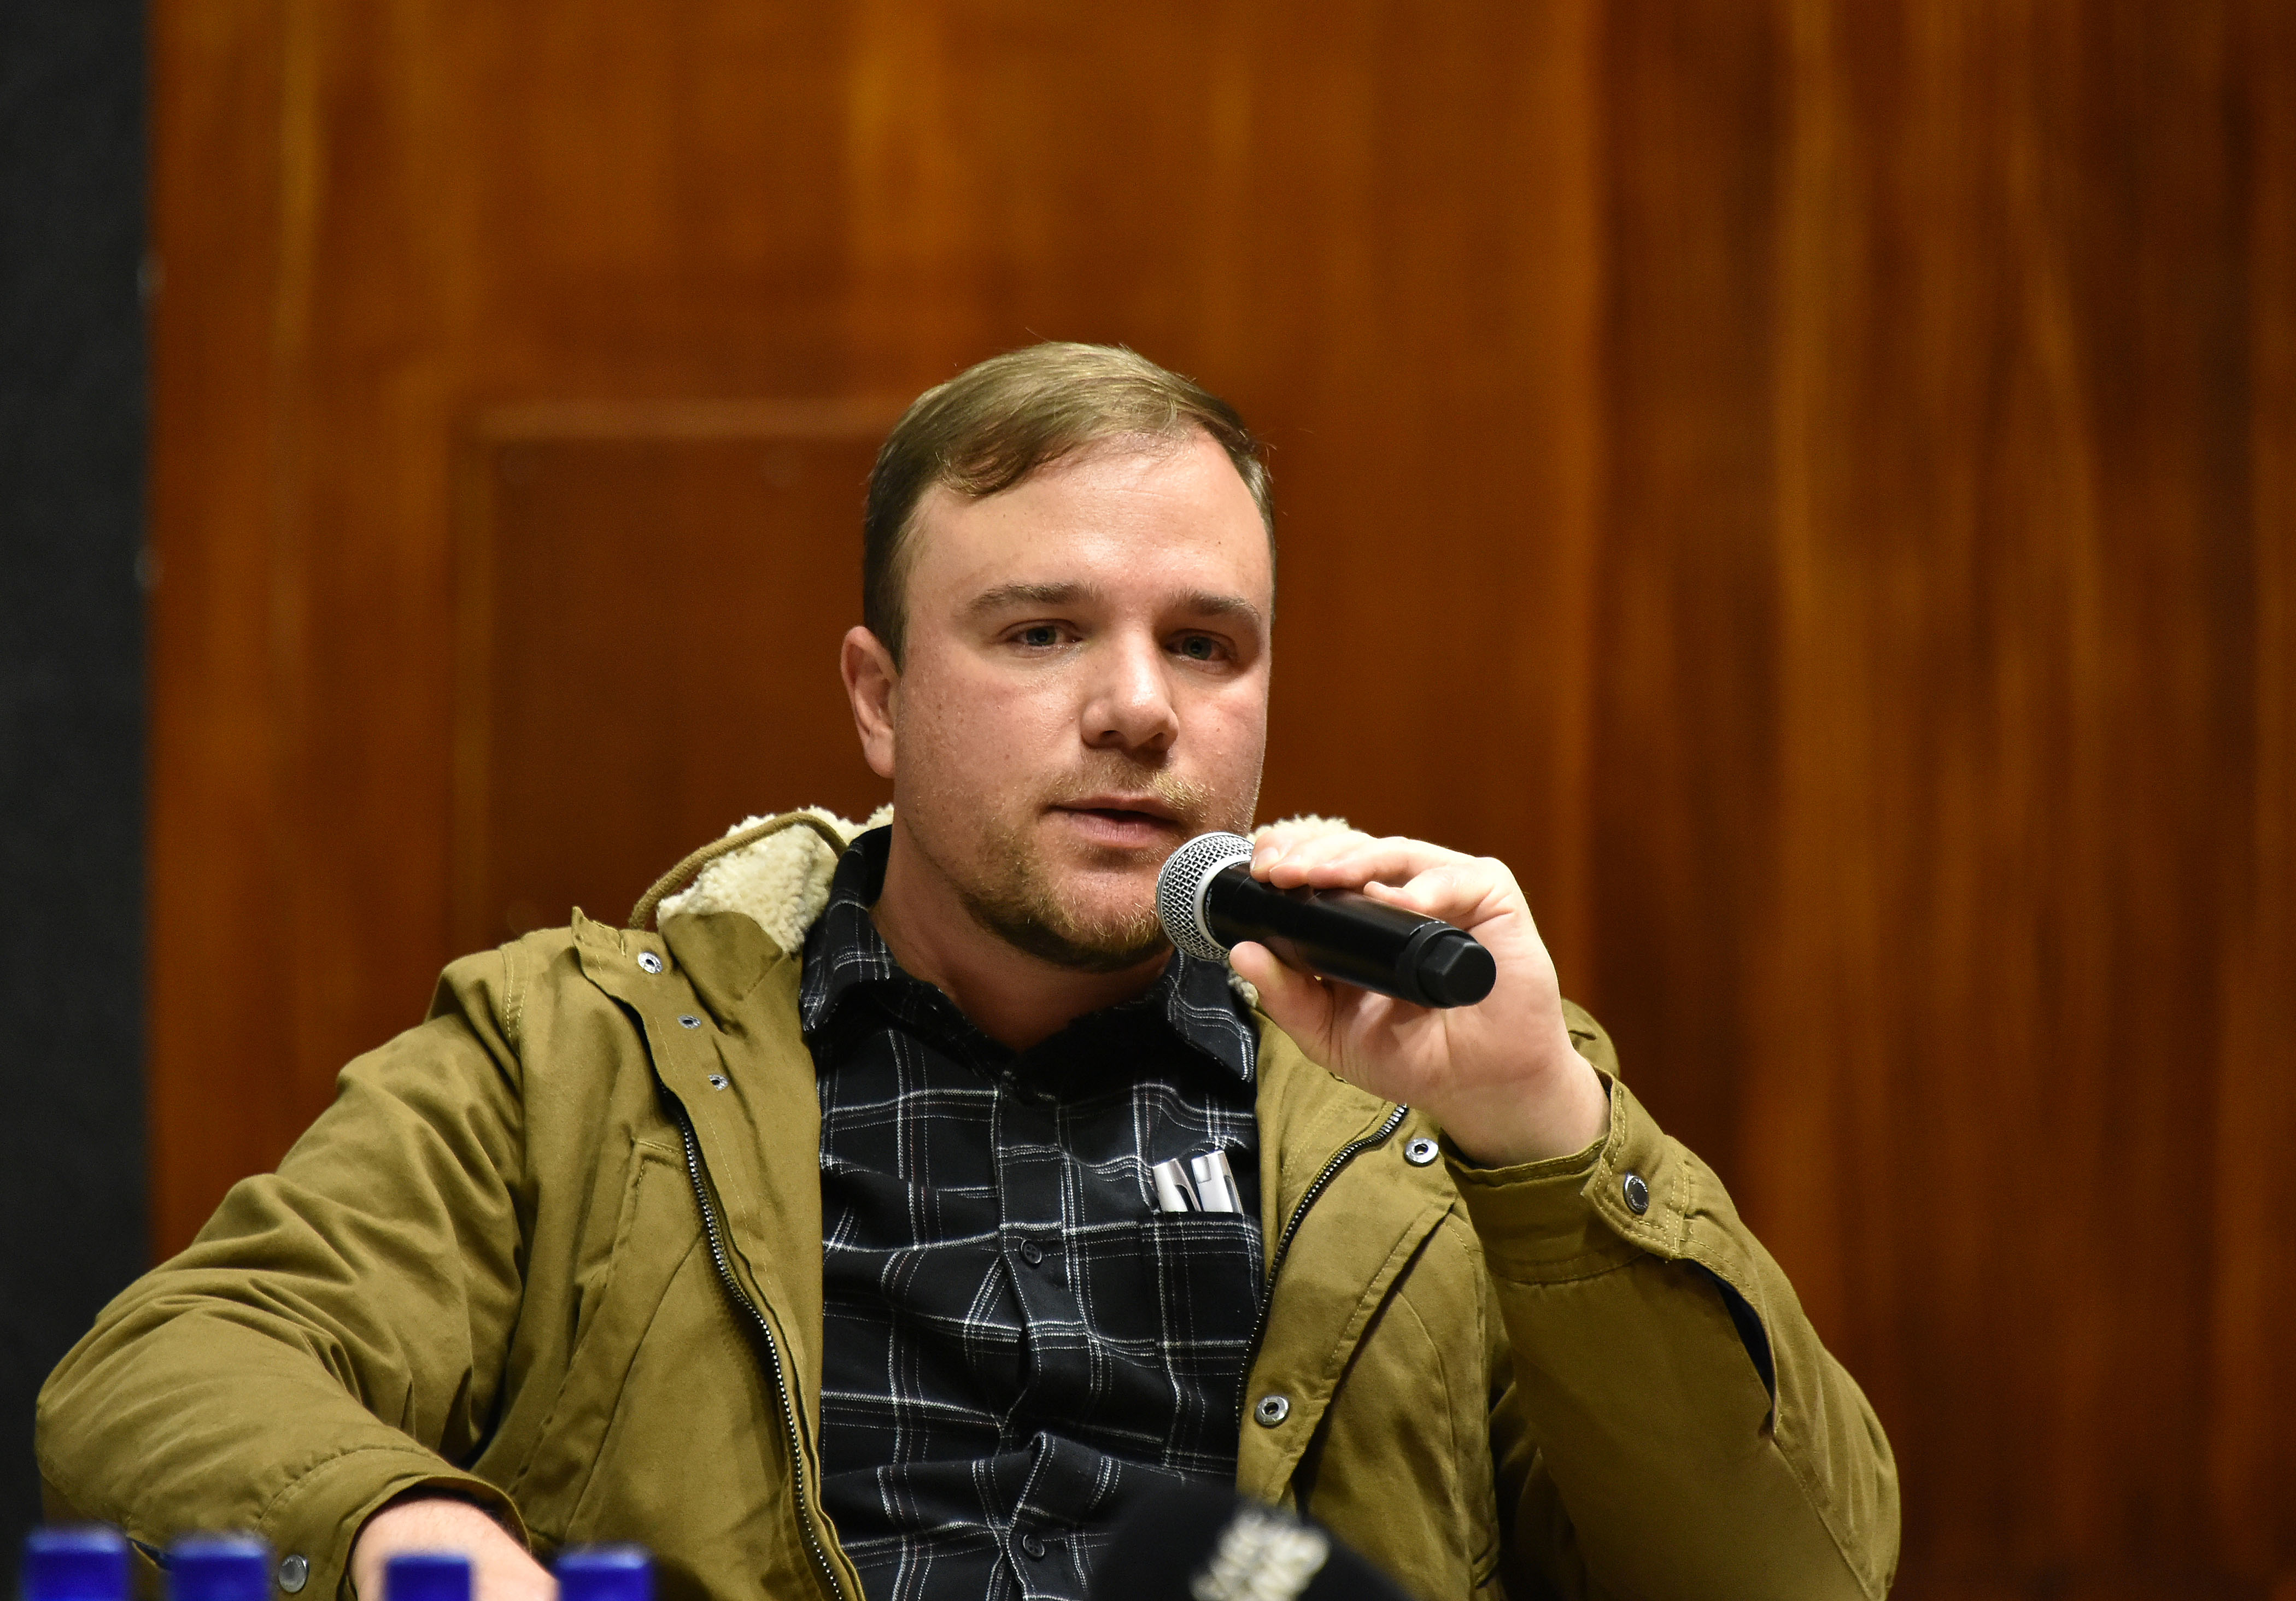 Pieter-Louis  Myburgh, author of #GangsterState